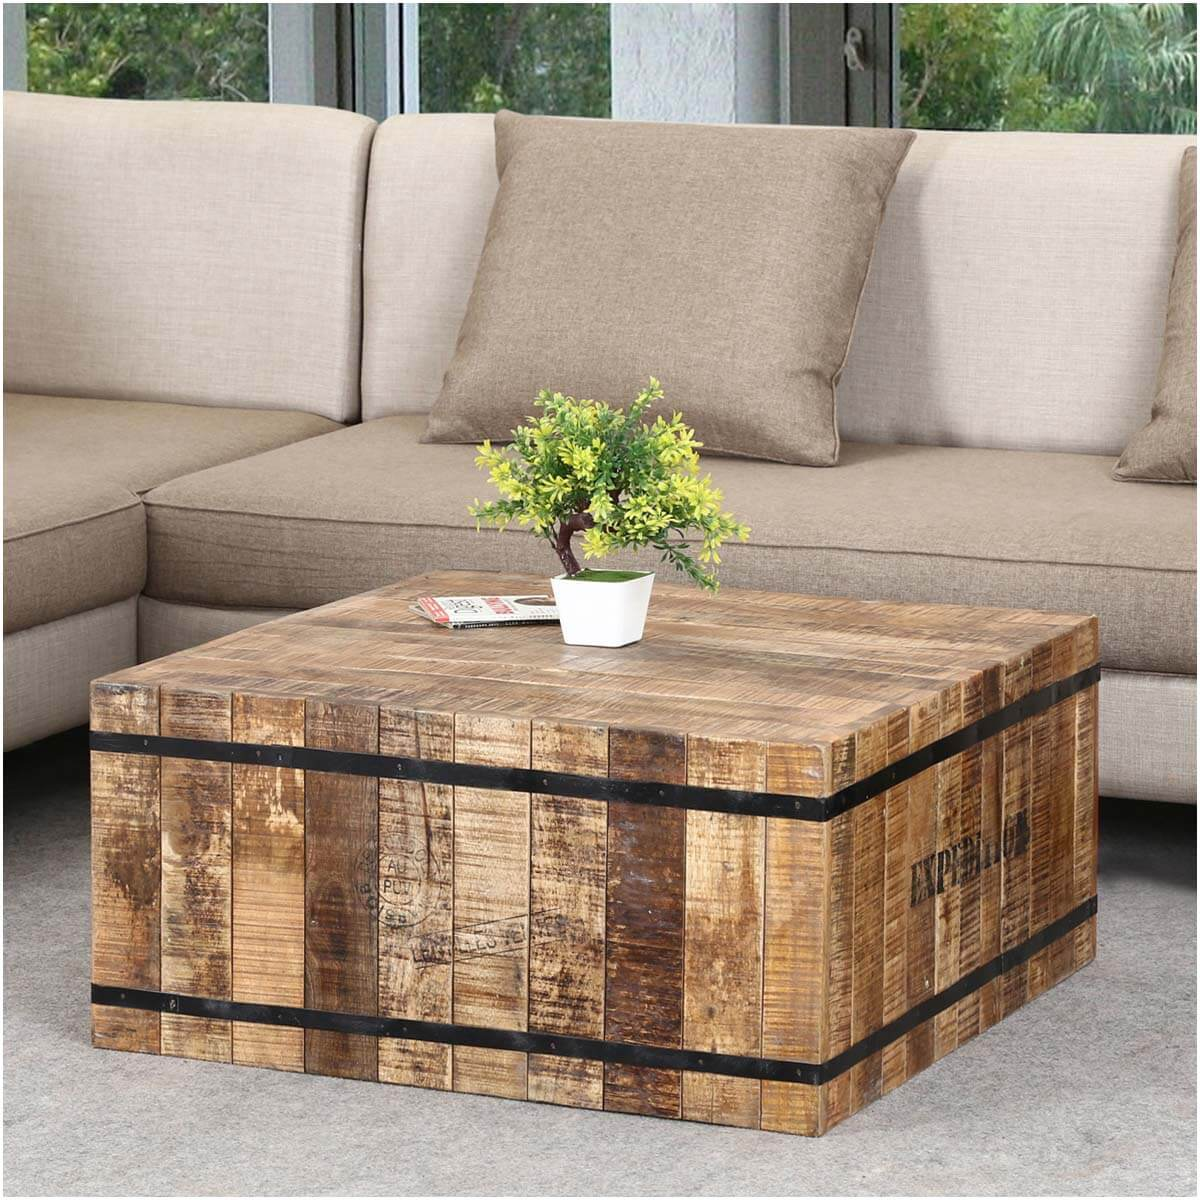 Expedition rustic mango wood iron square box style coffee table Rustic iron coffee table